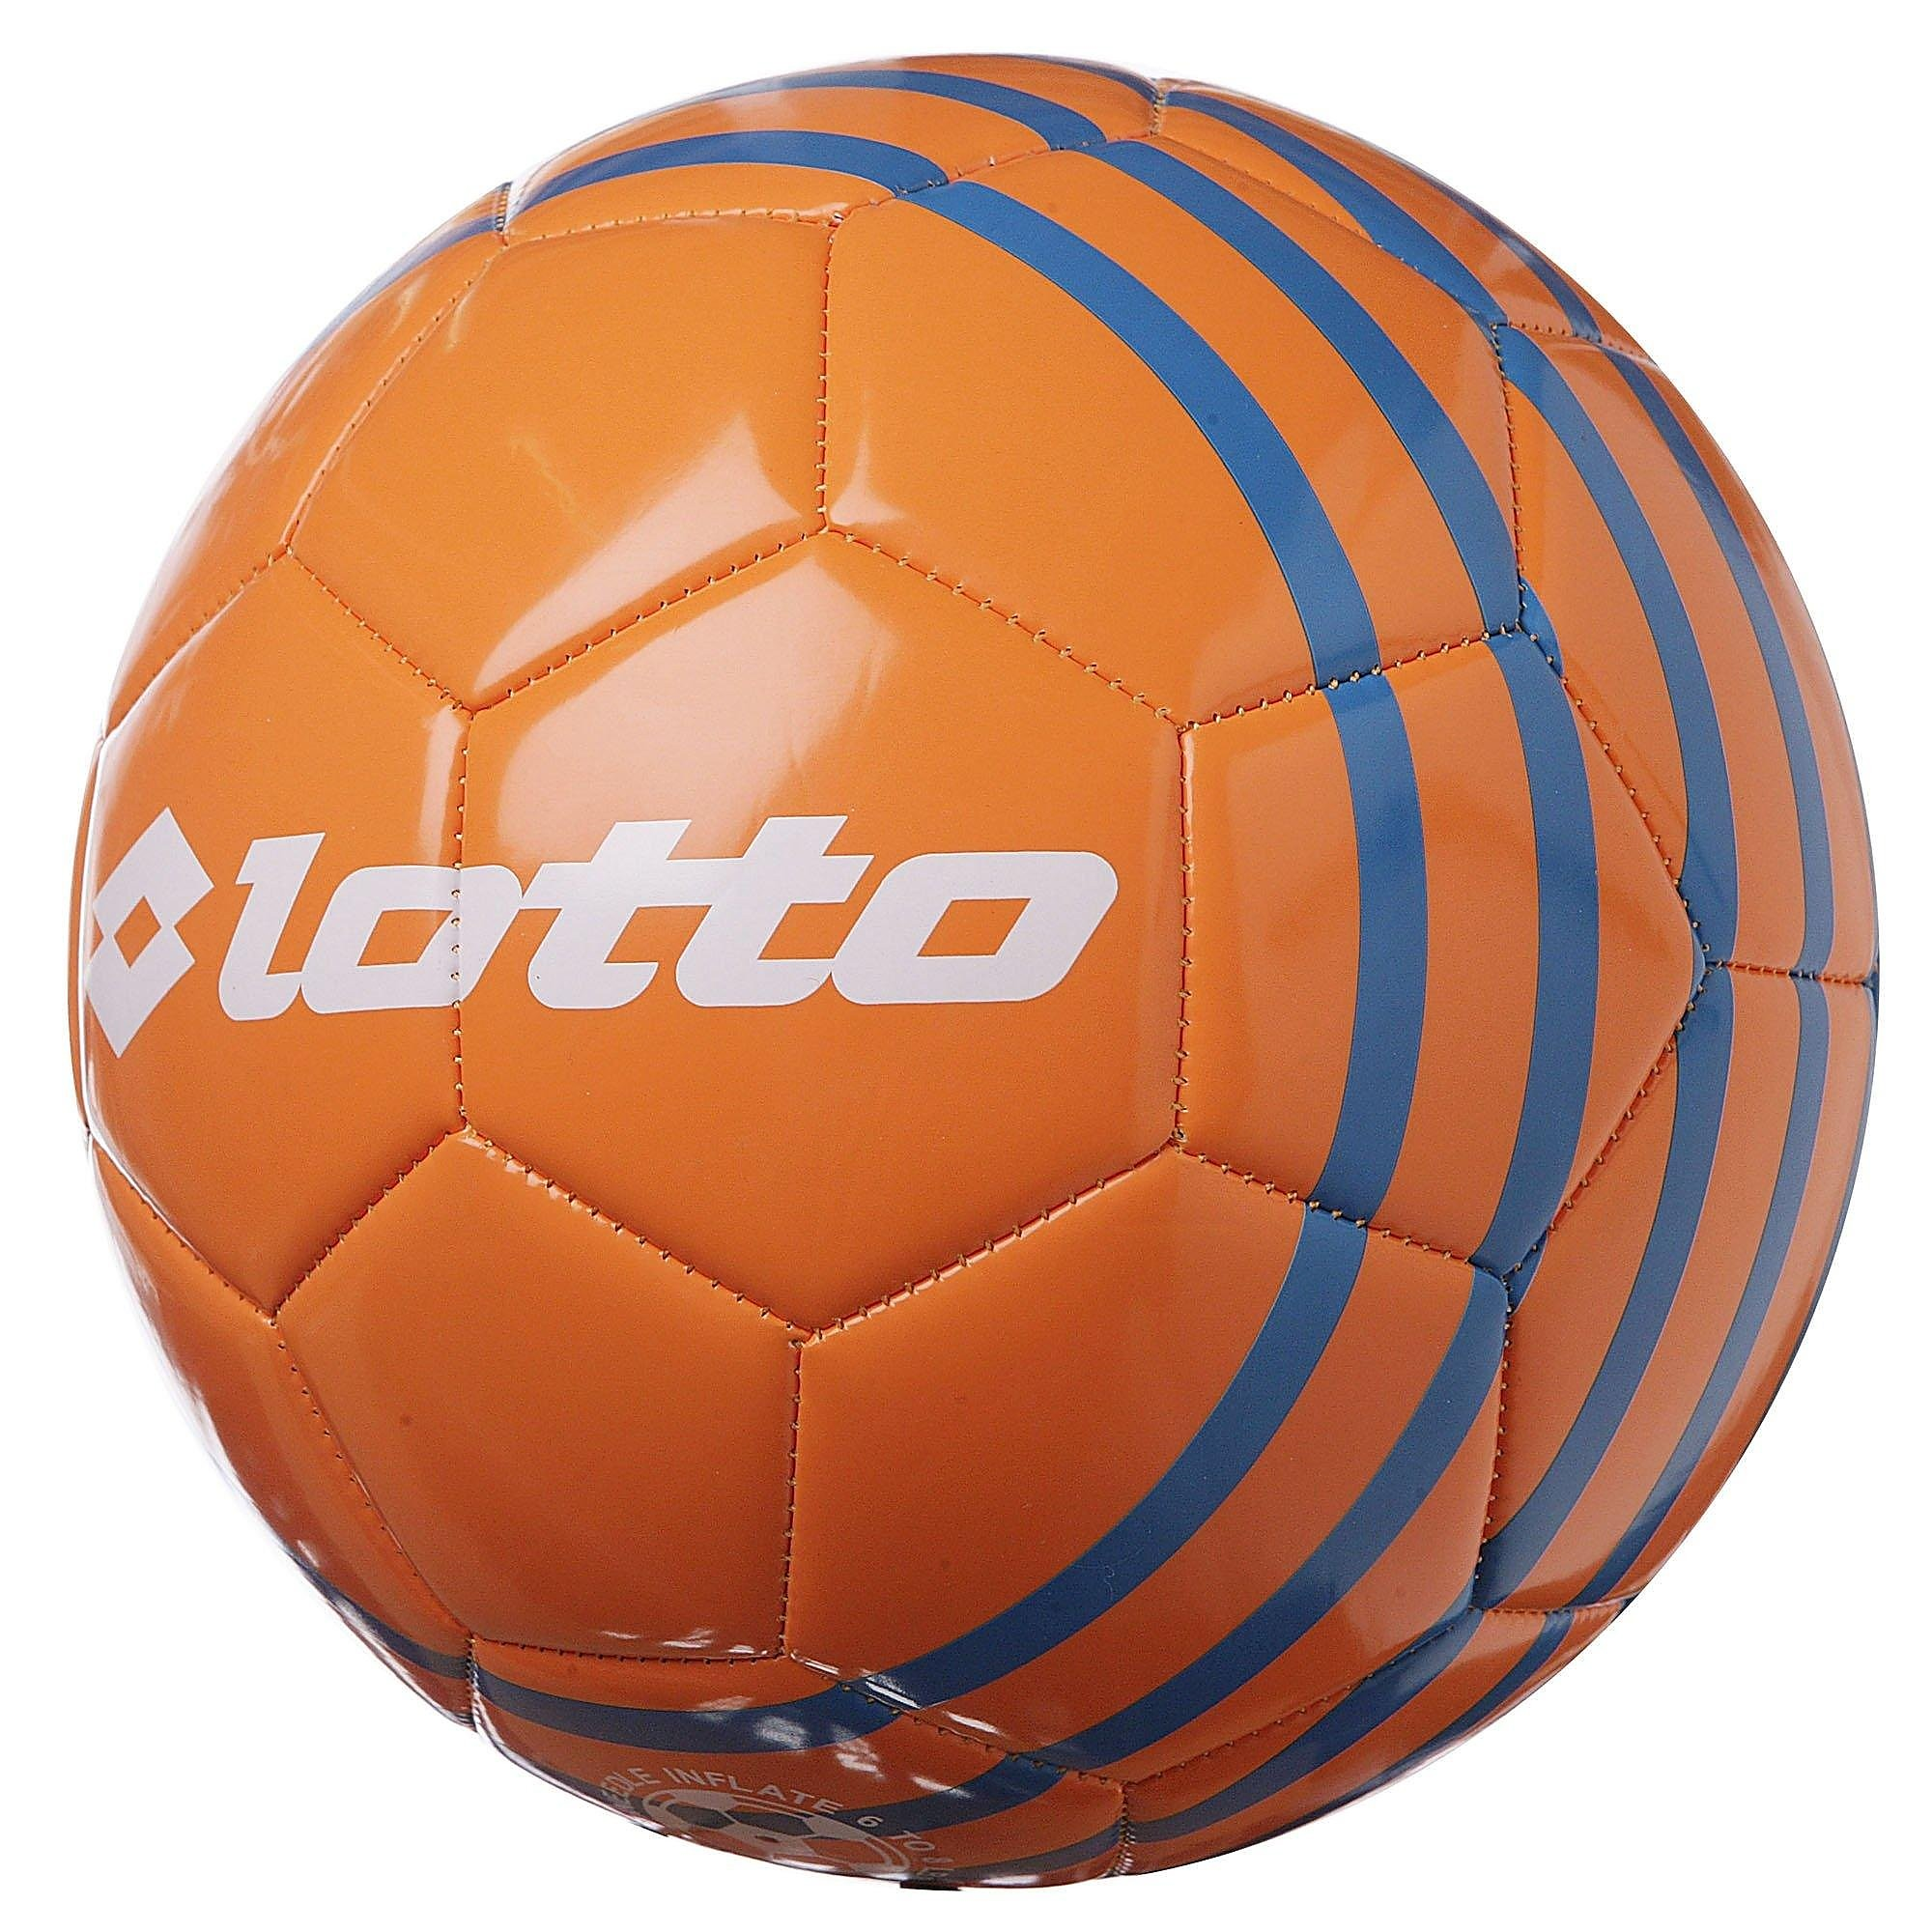 LOTTO INVADER VOETBAL ORANJE